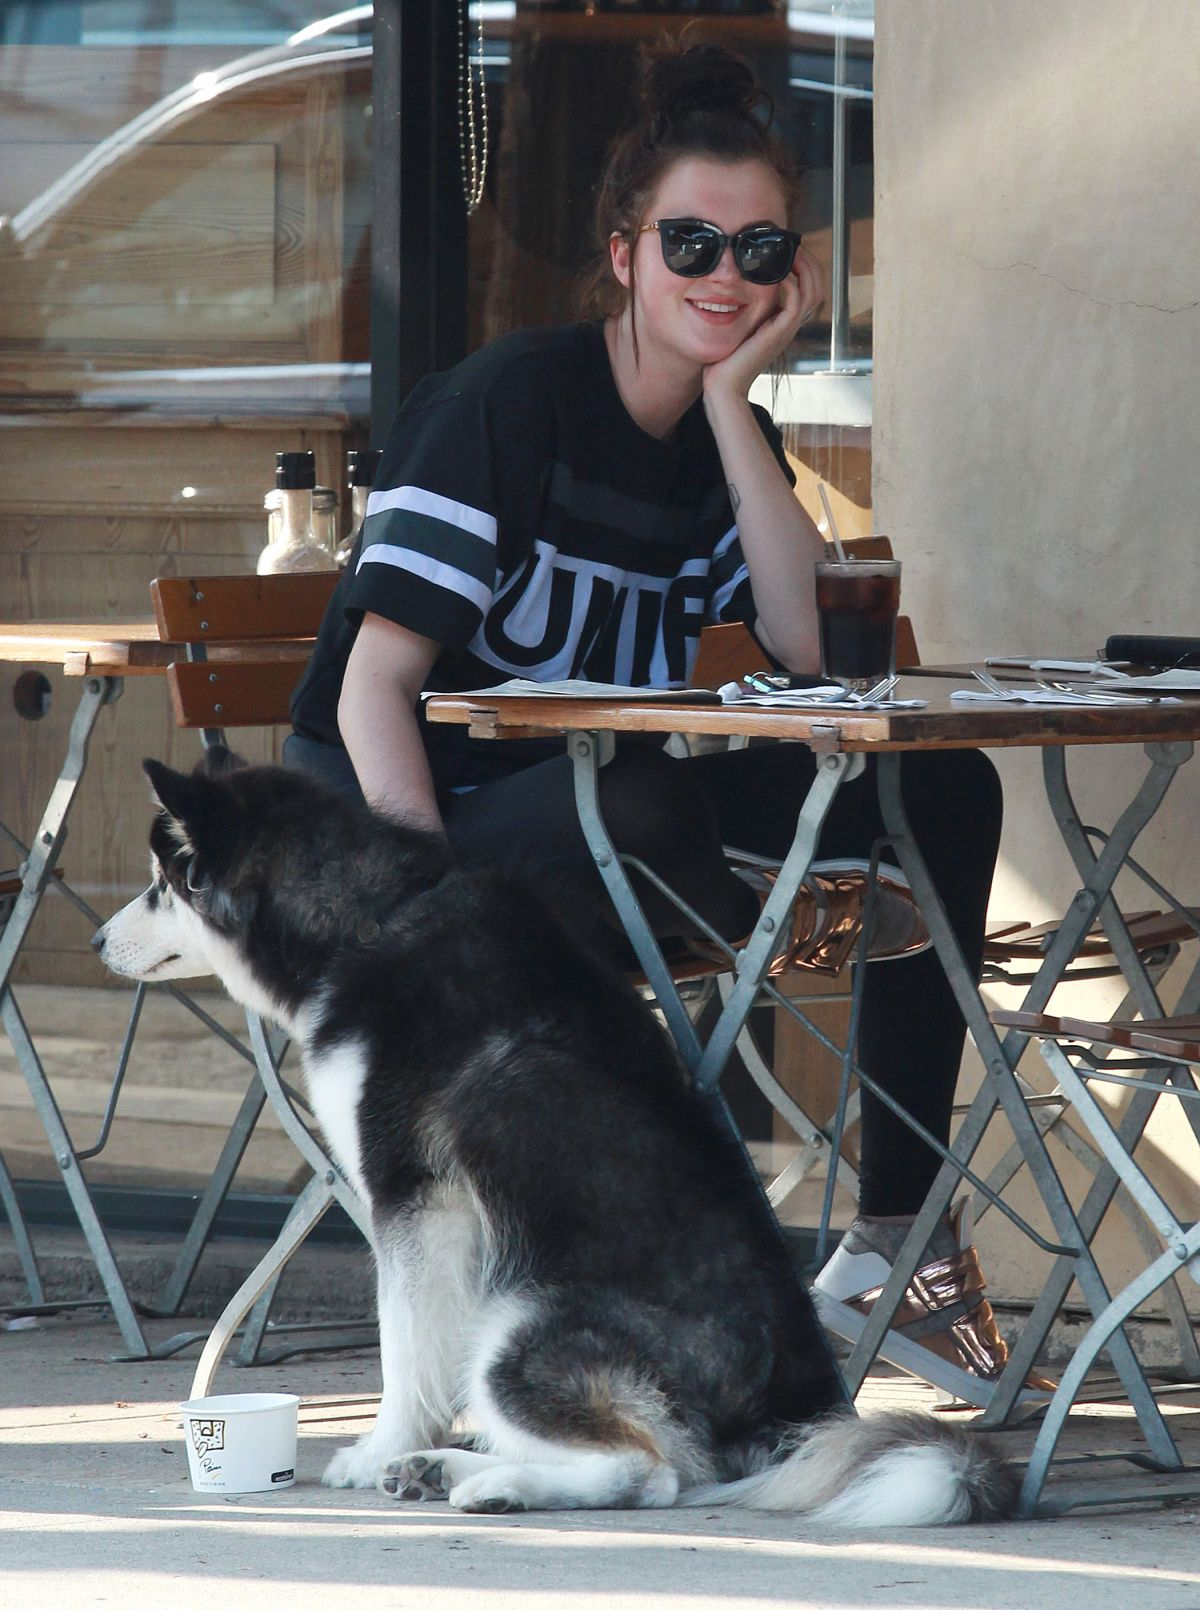 IRELAND BALDWIN at Le Pain Quotidien Bakery in Los Angeles 08/22/2015